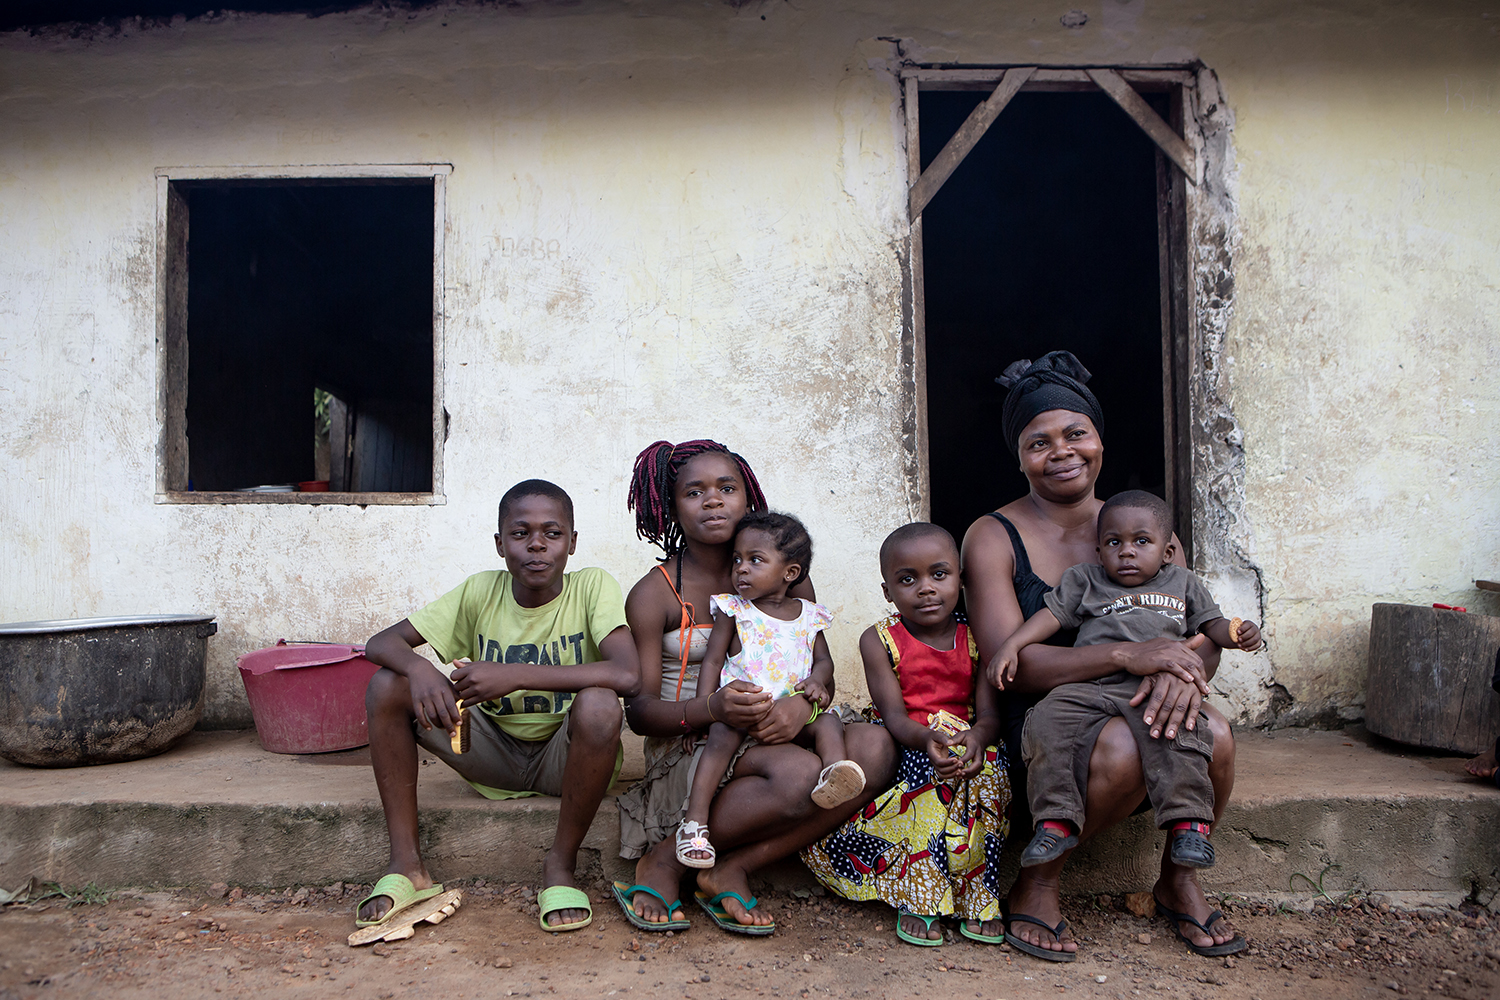 UNICEF - (POC) Point of Care Project UNITAID Cameroon